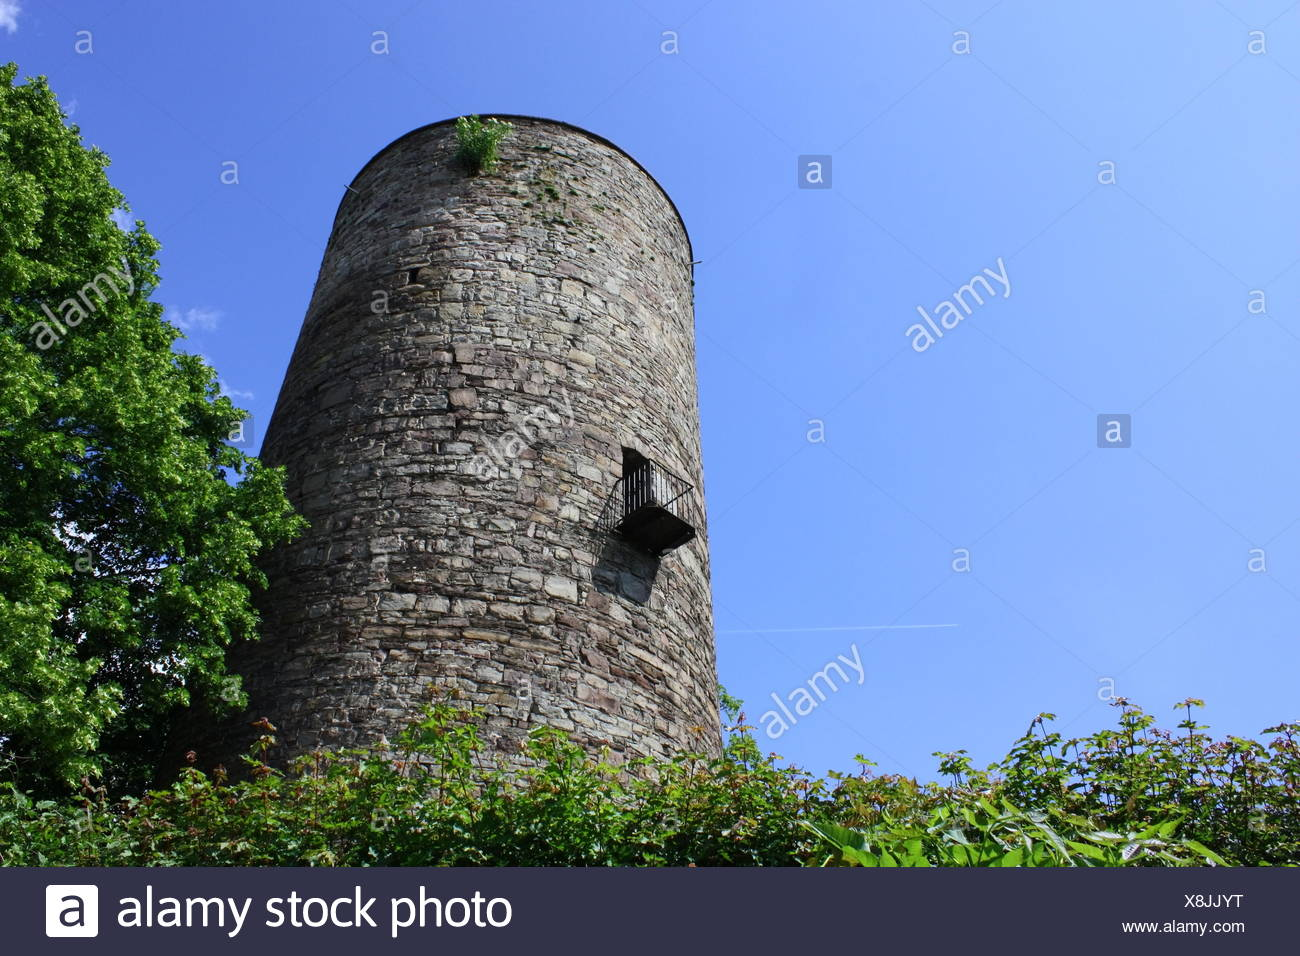 tower, high pressure area, middle ages, blue, tower, wall, balcony, high - Stock Image